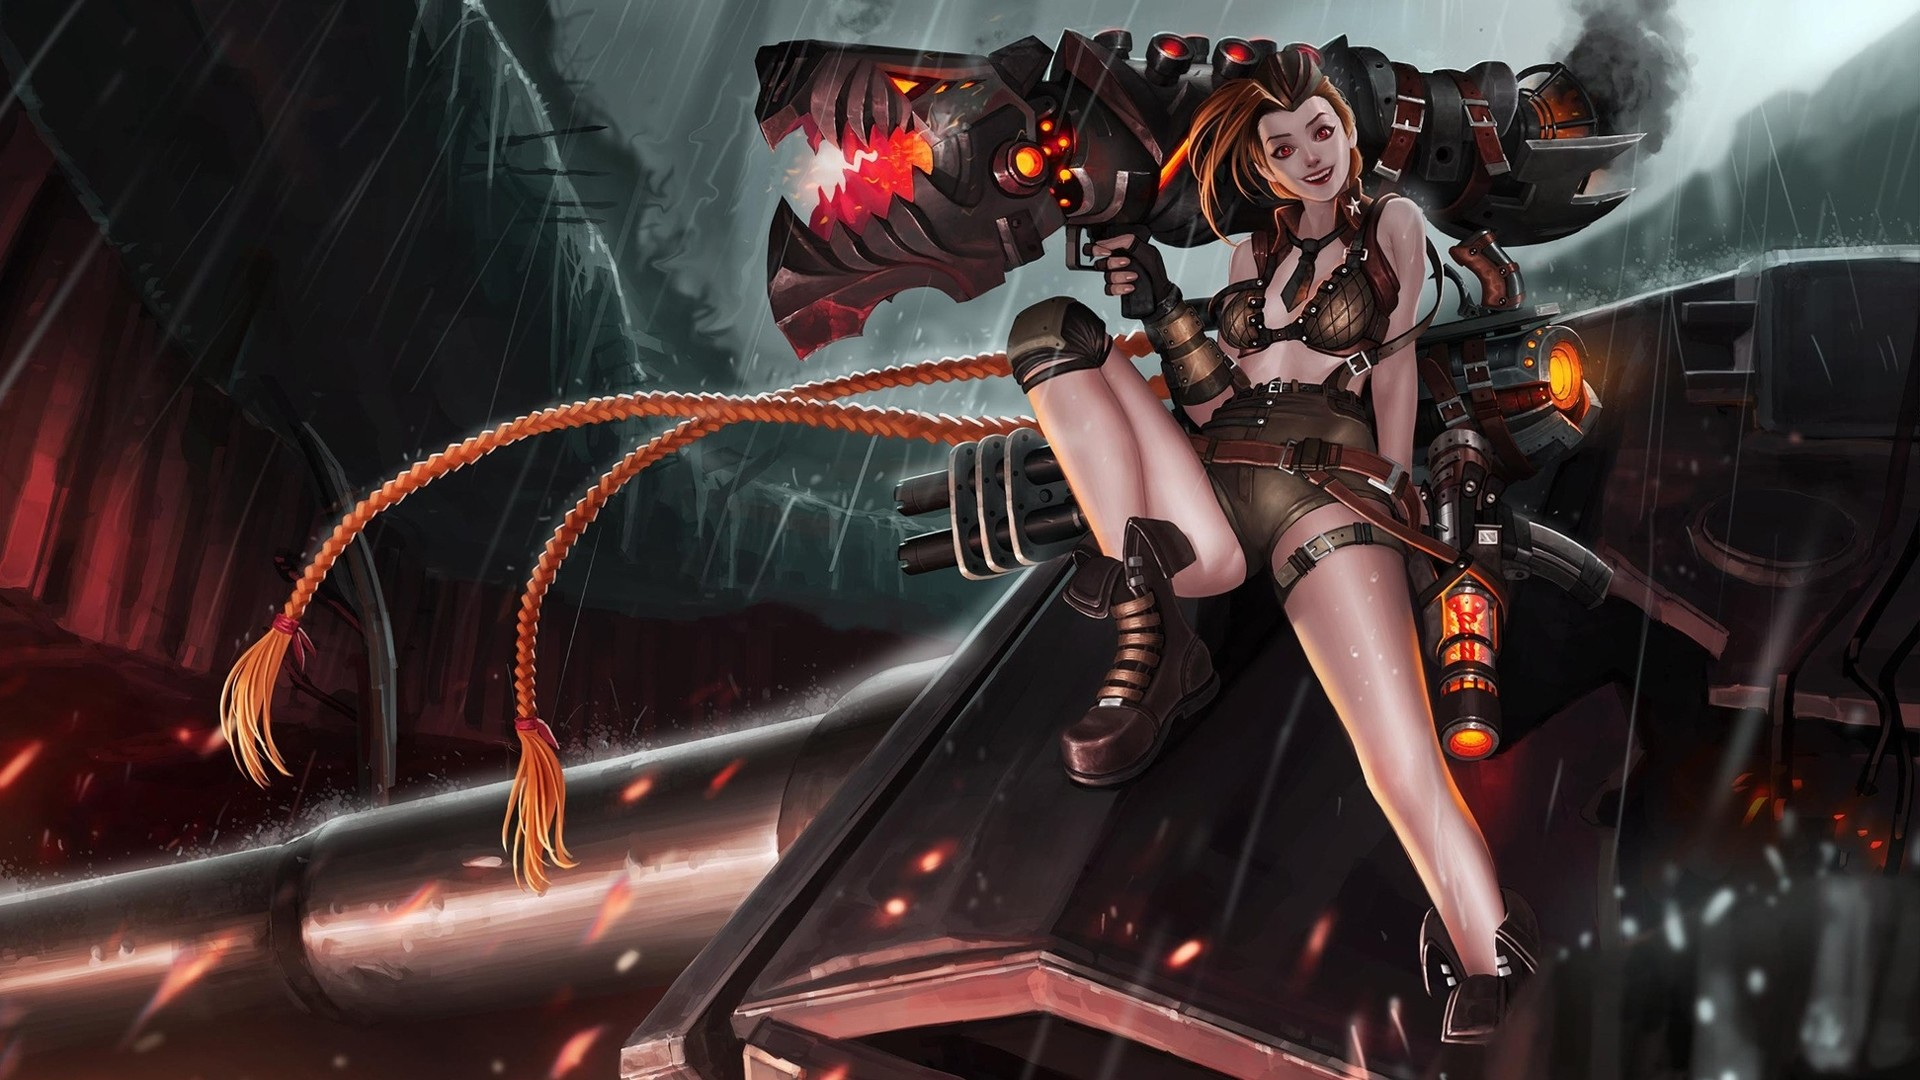 1920x1080 Free hd jinx wallpapers